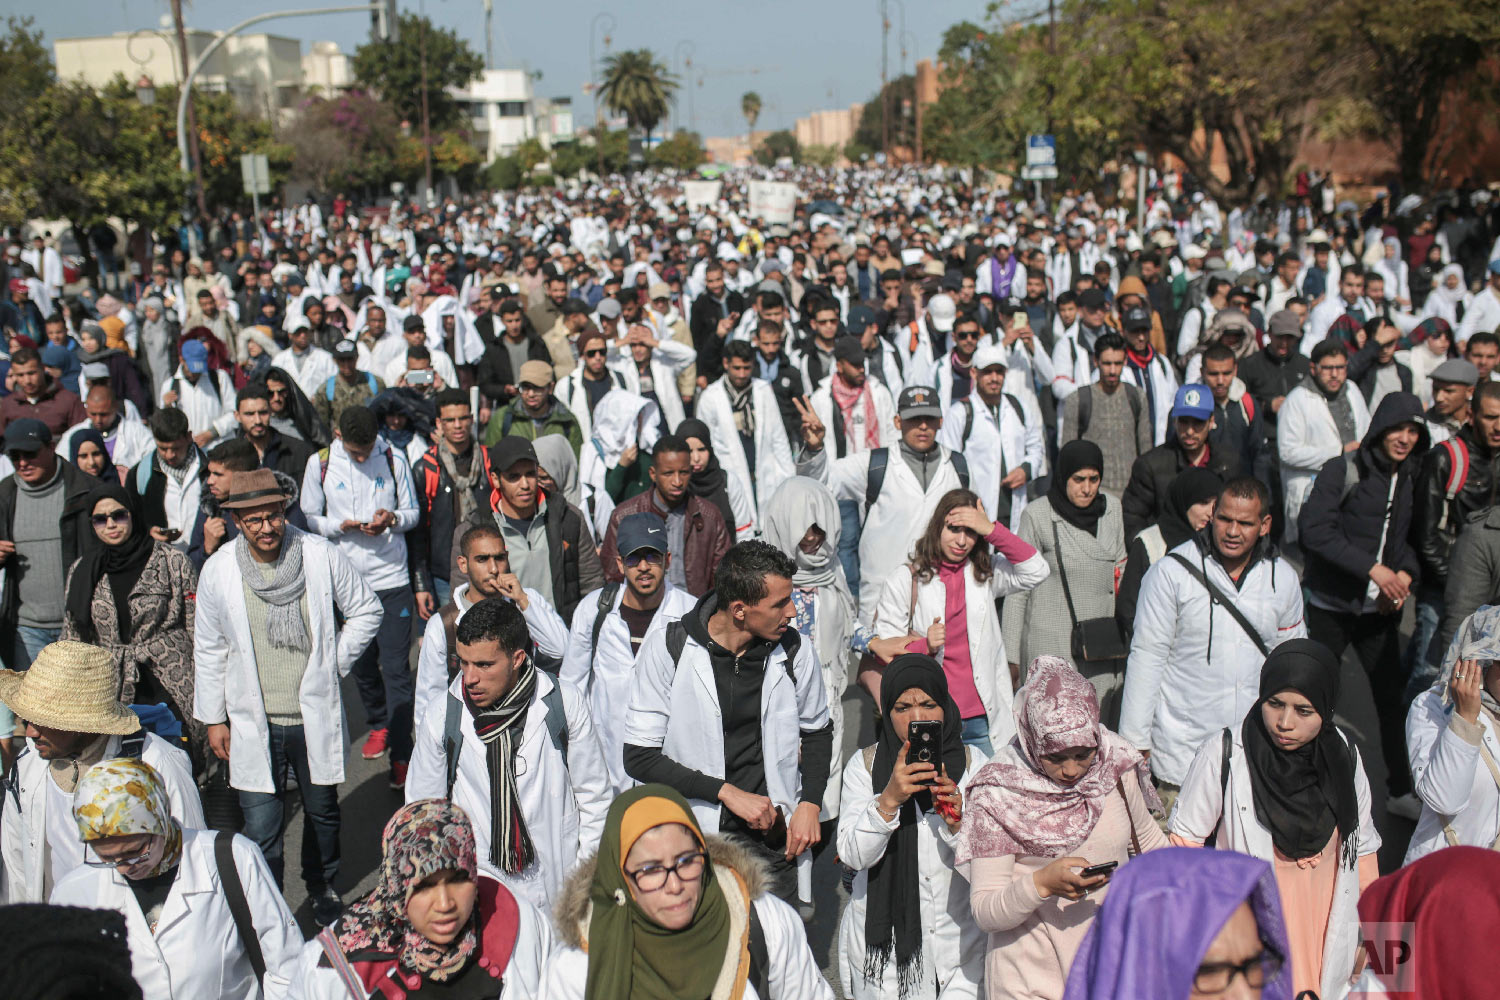 Thousands of teachers chant slogans during a demonstration in Rabat, Morocco, Feb. 20, 2019. (AP Photo/Mosa'ab Elshamy)